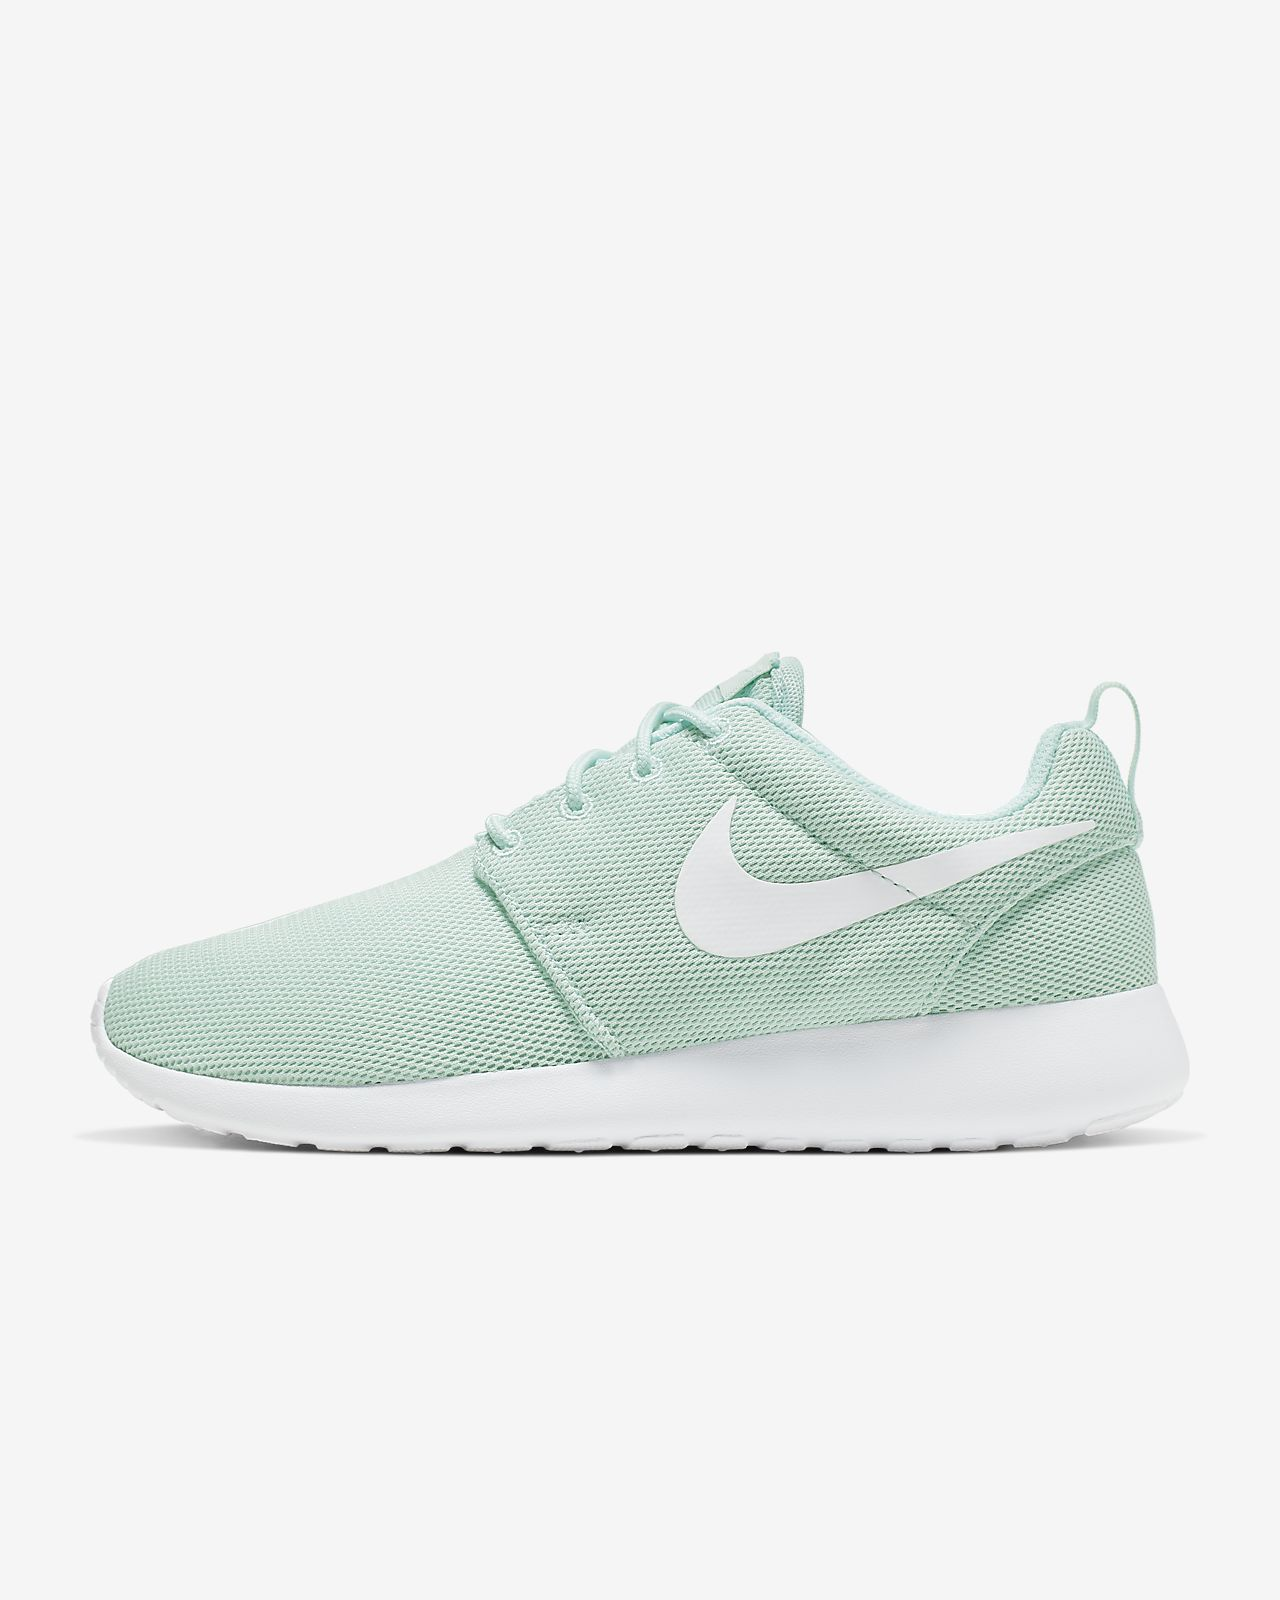 premium selection 214a6 3db15 ... Nike Roshe One Women s Shoe